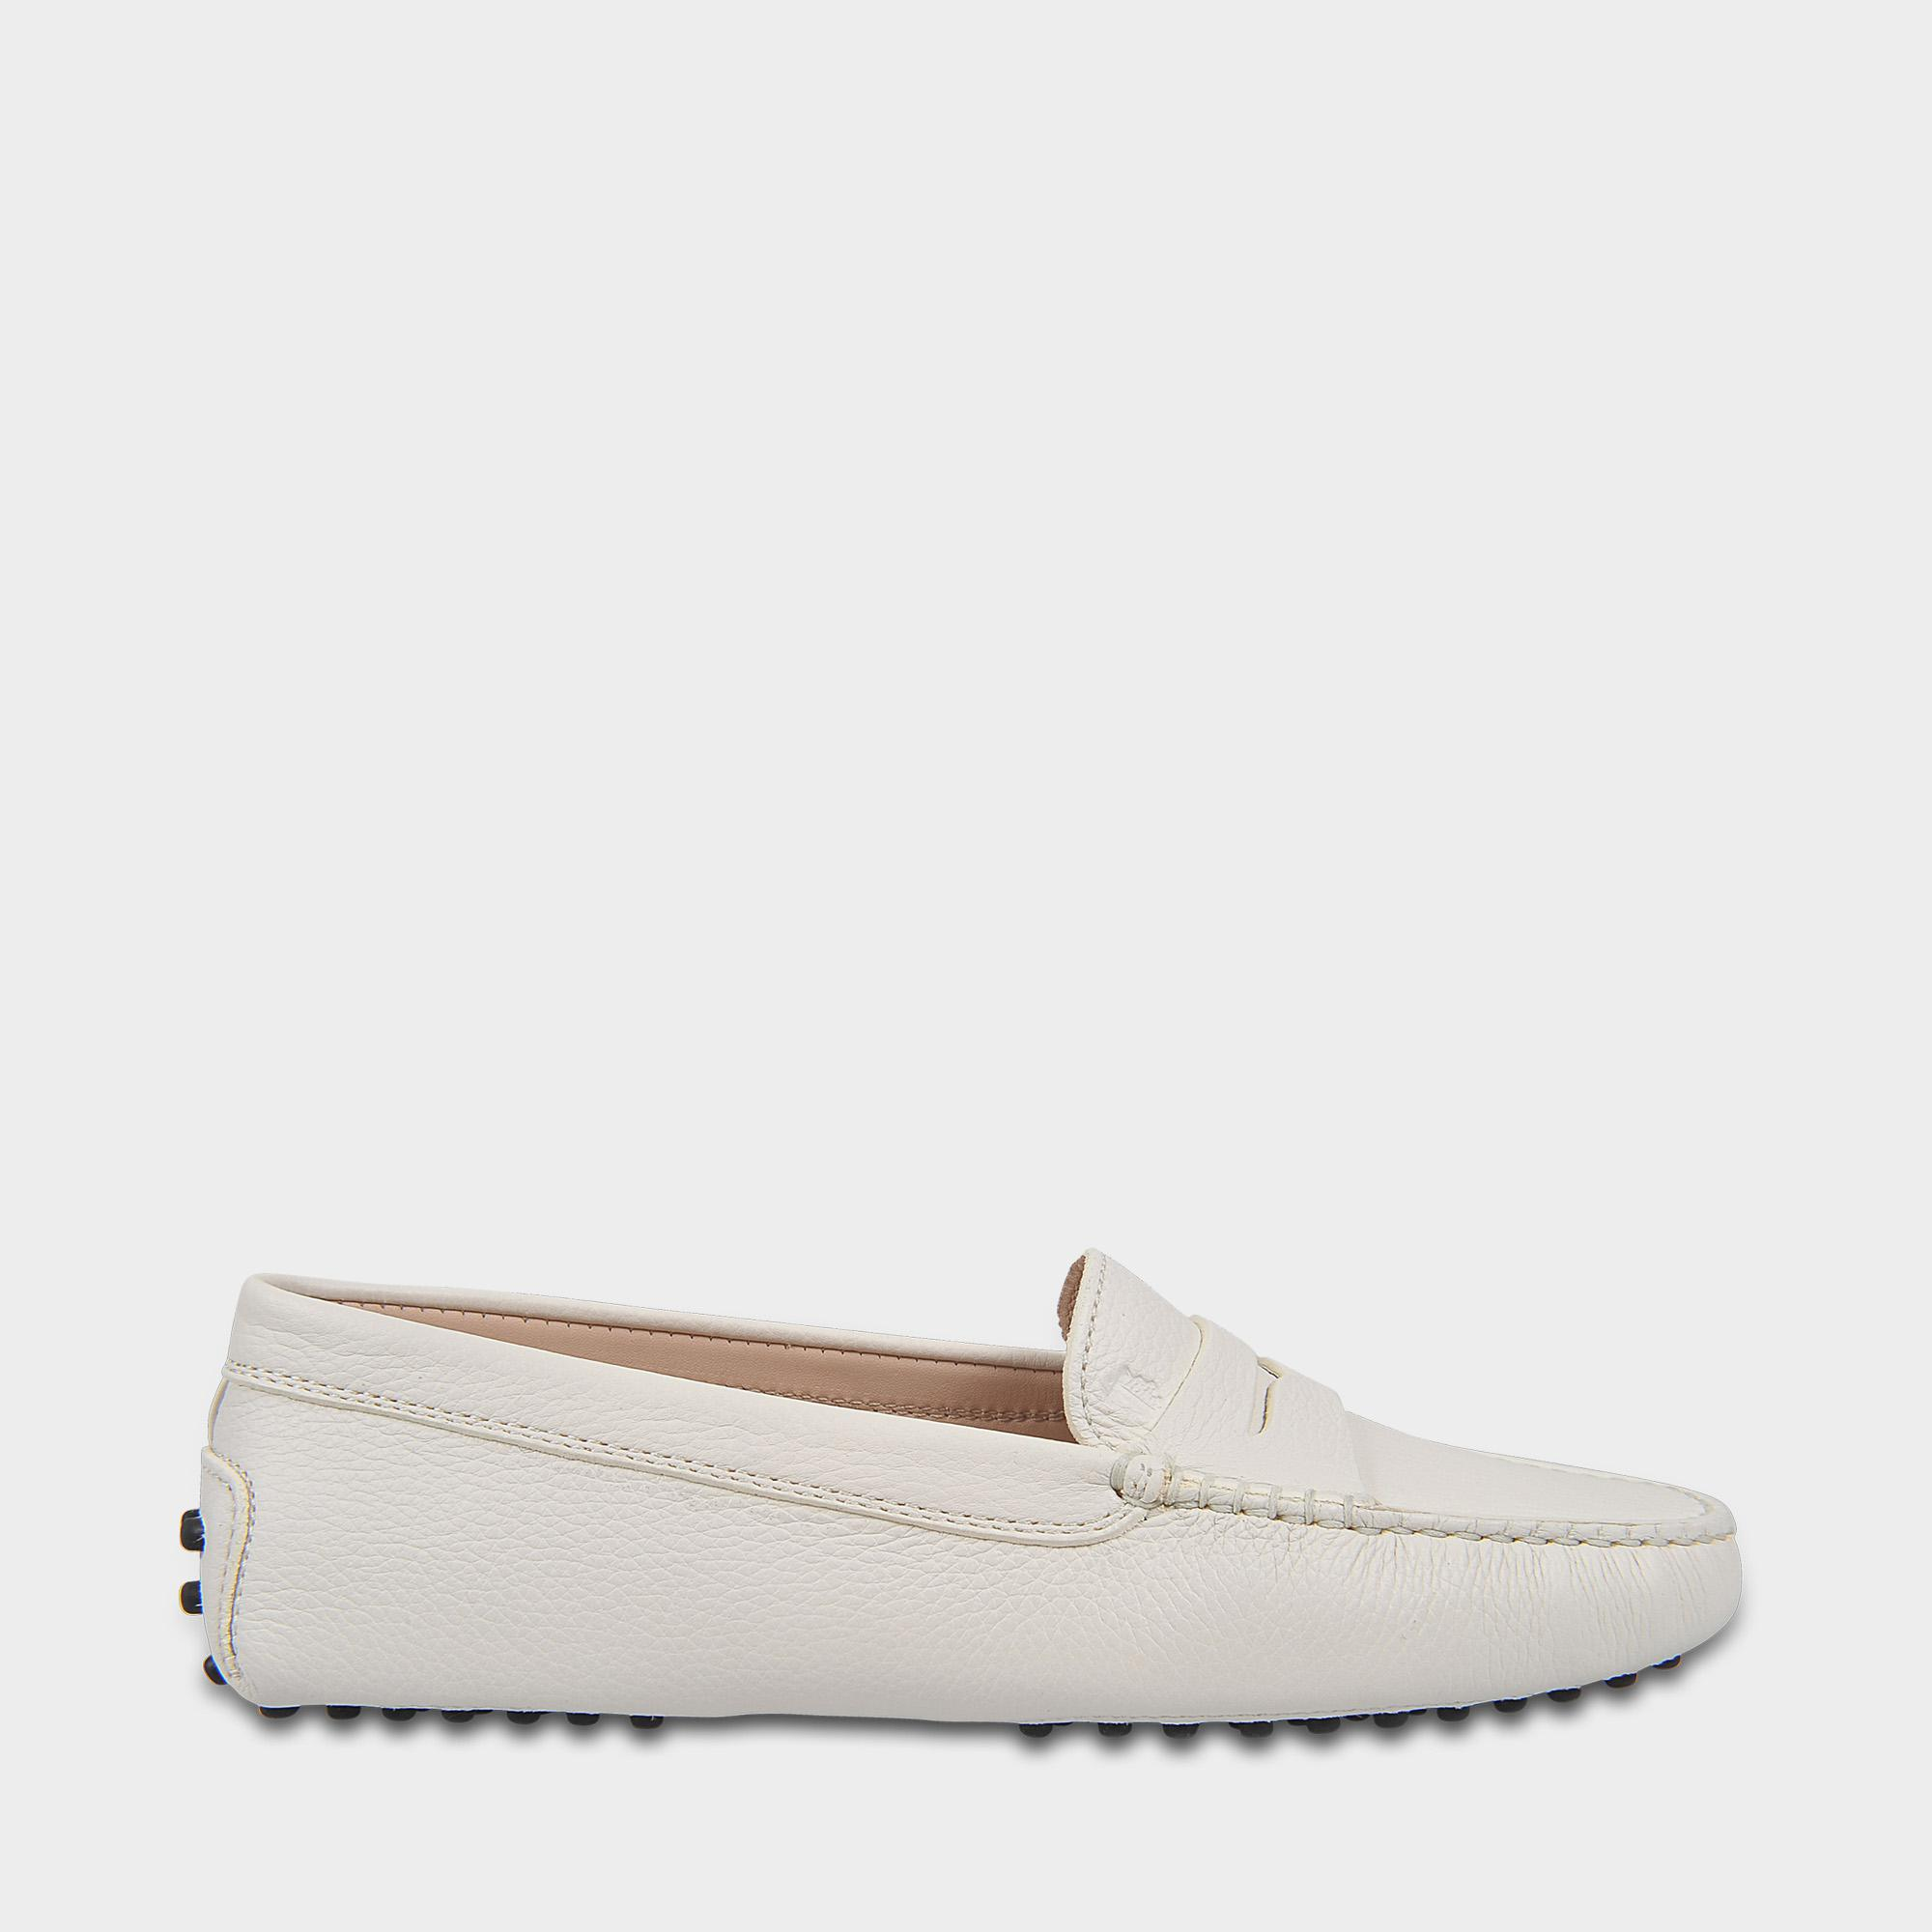 Fringed Moccasins in White Grained Calfskin Tod's uUrf1NzVR